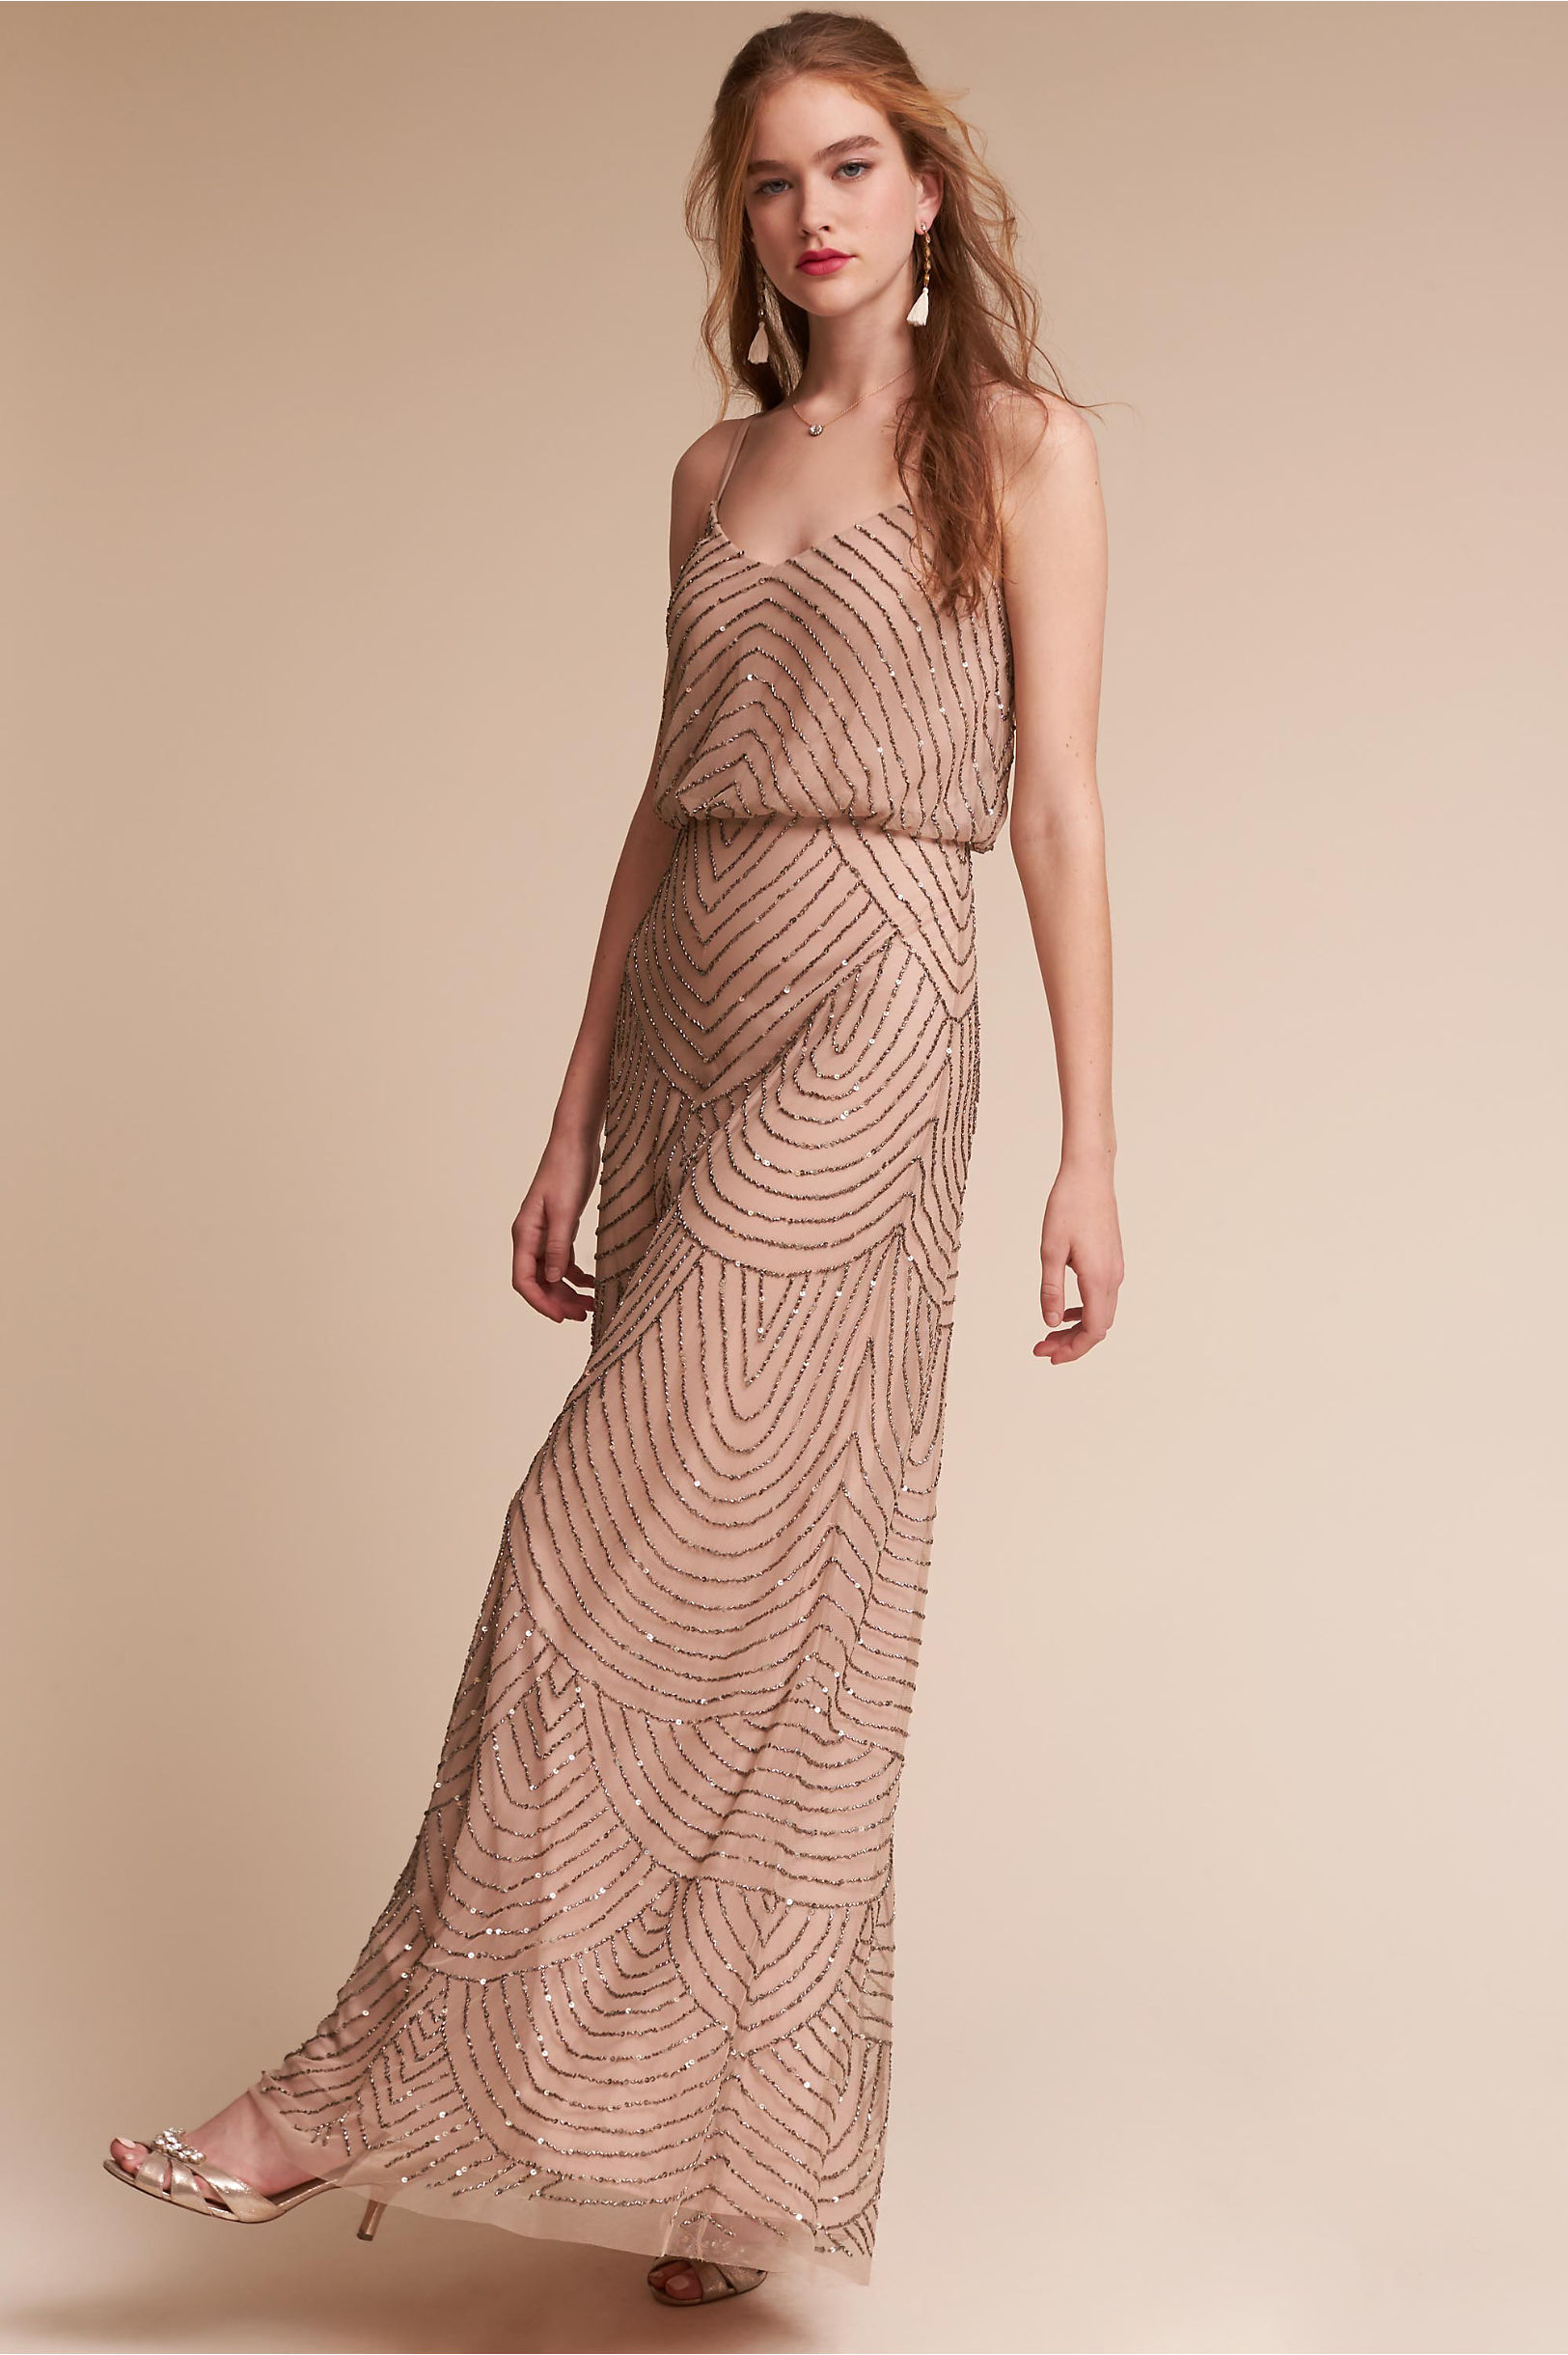 Eclipse Dress in Sale | BHLDN